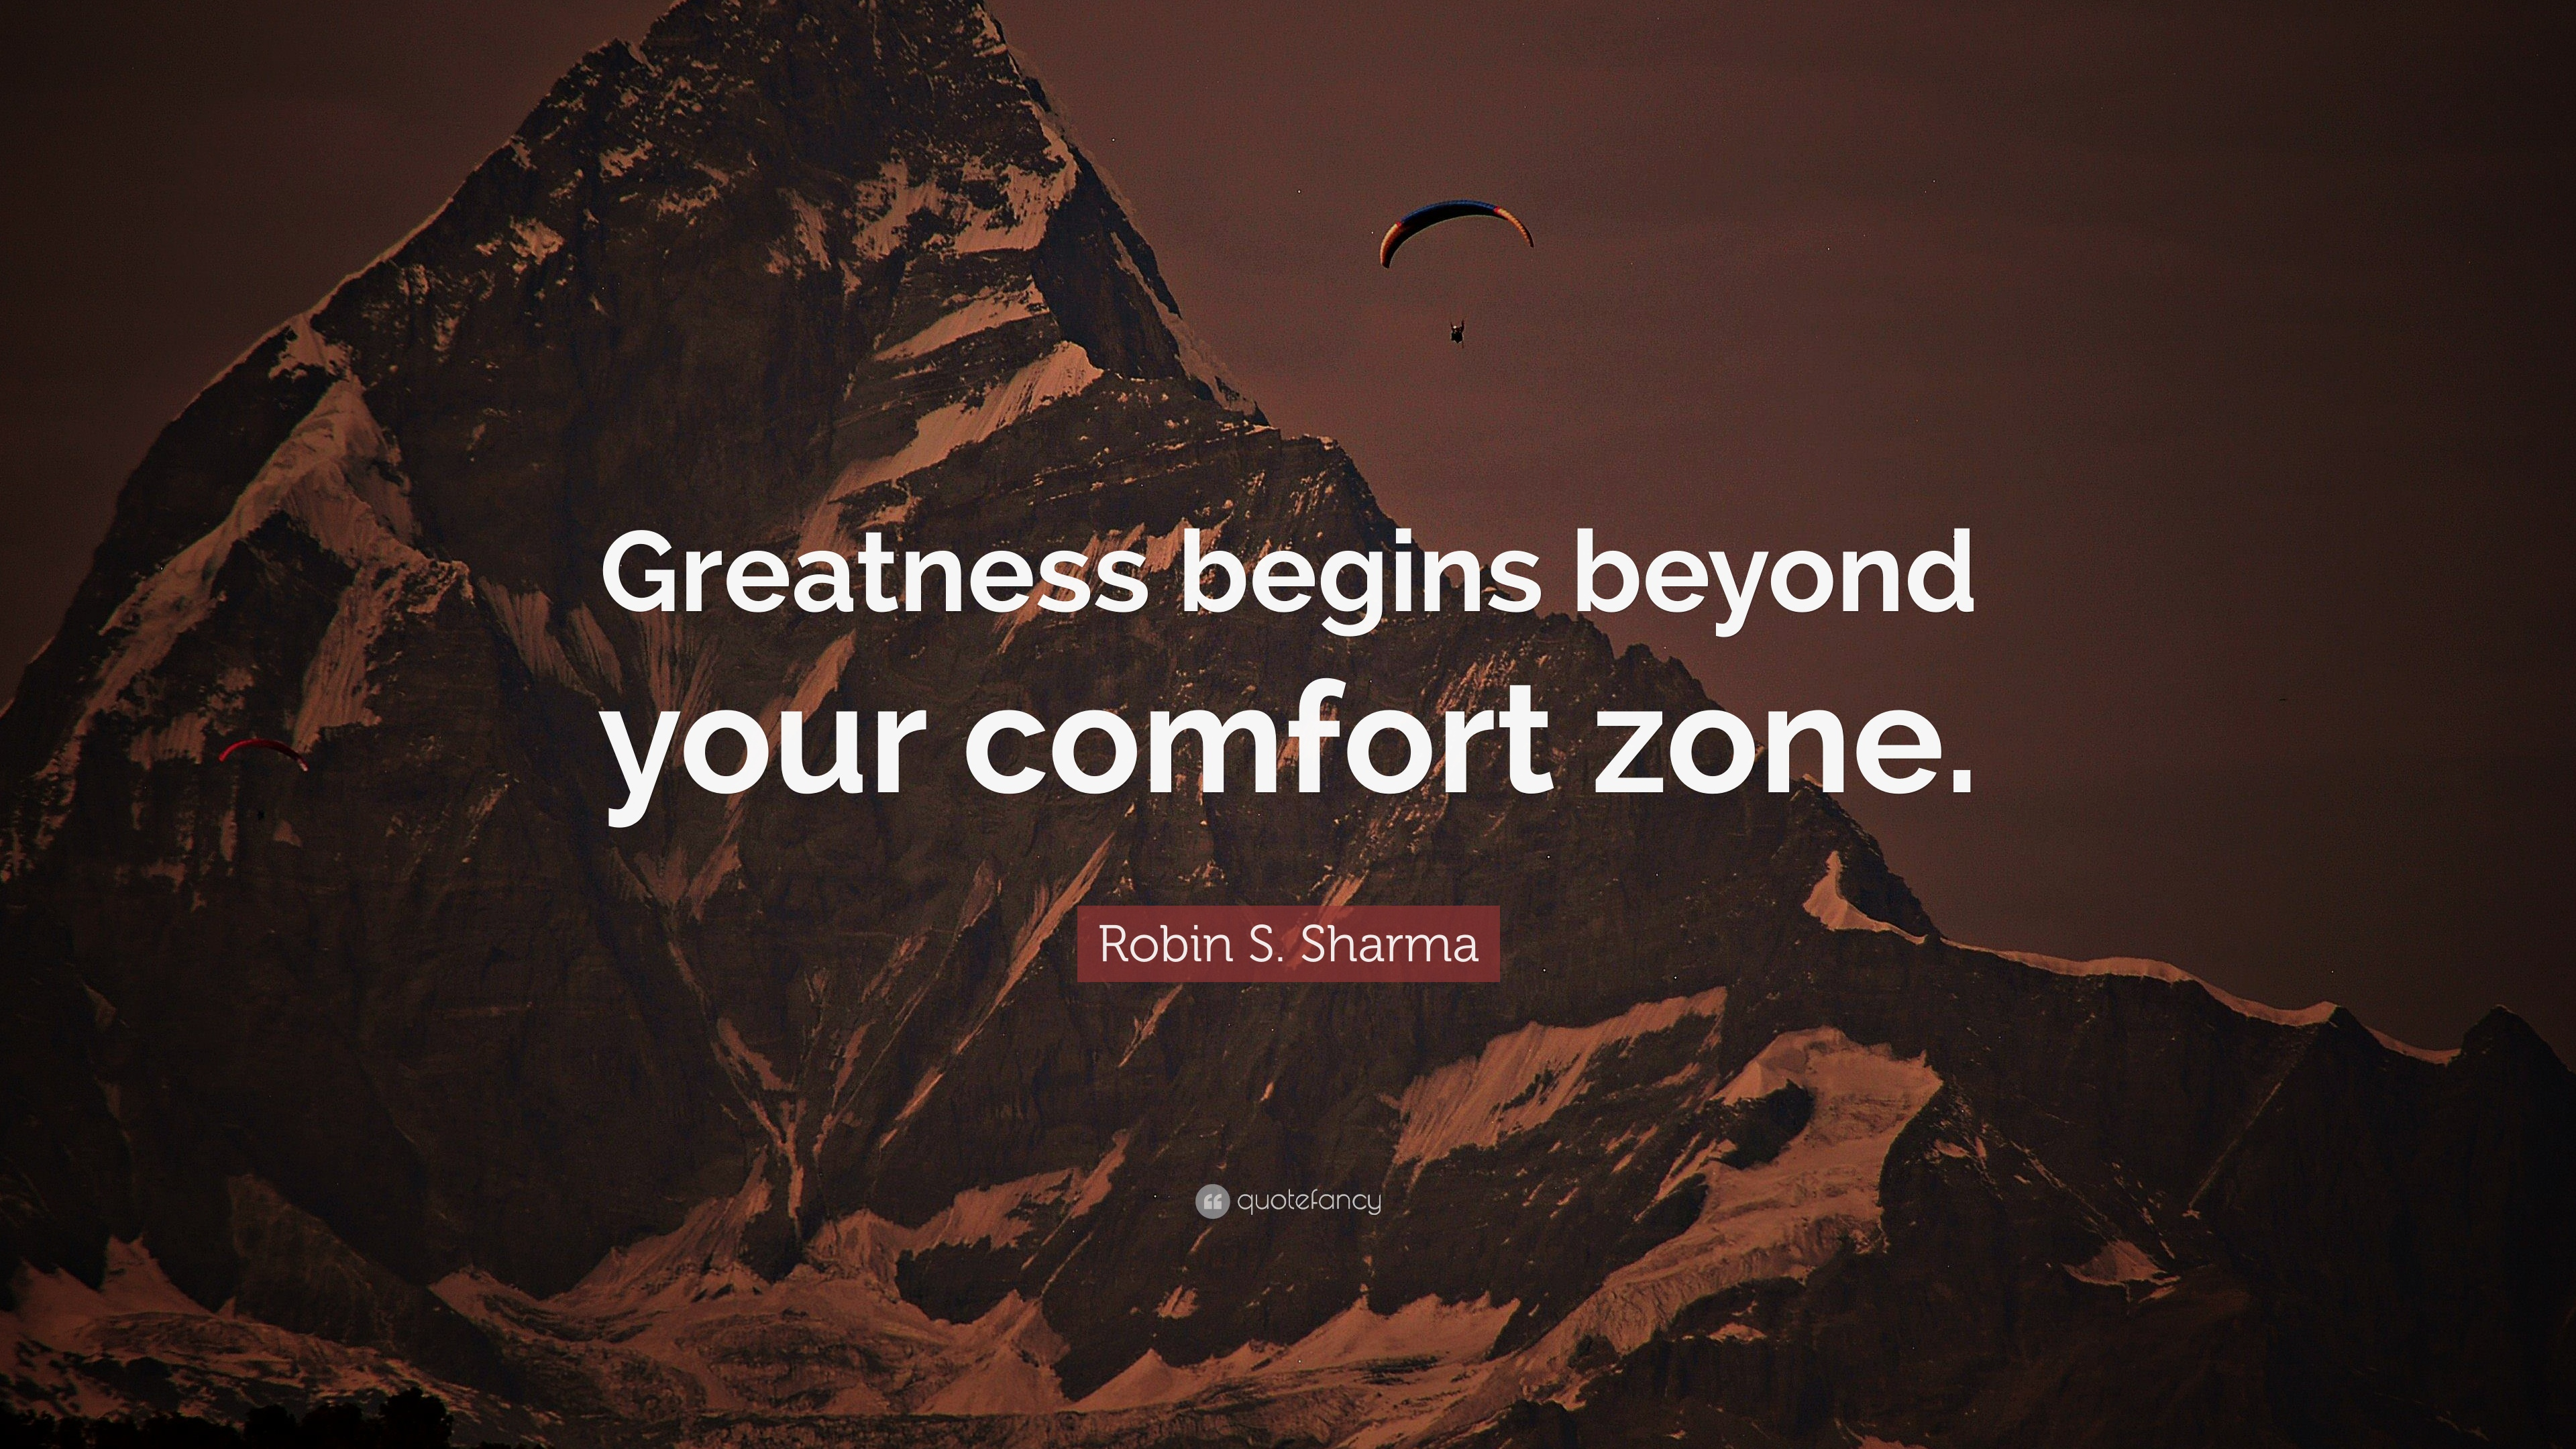 Nice Wallpapers With Inspiring Quotes Robin S Sharma Quote Greatness Begins Beyond Your